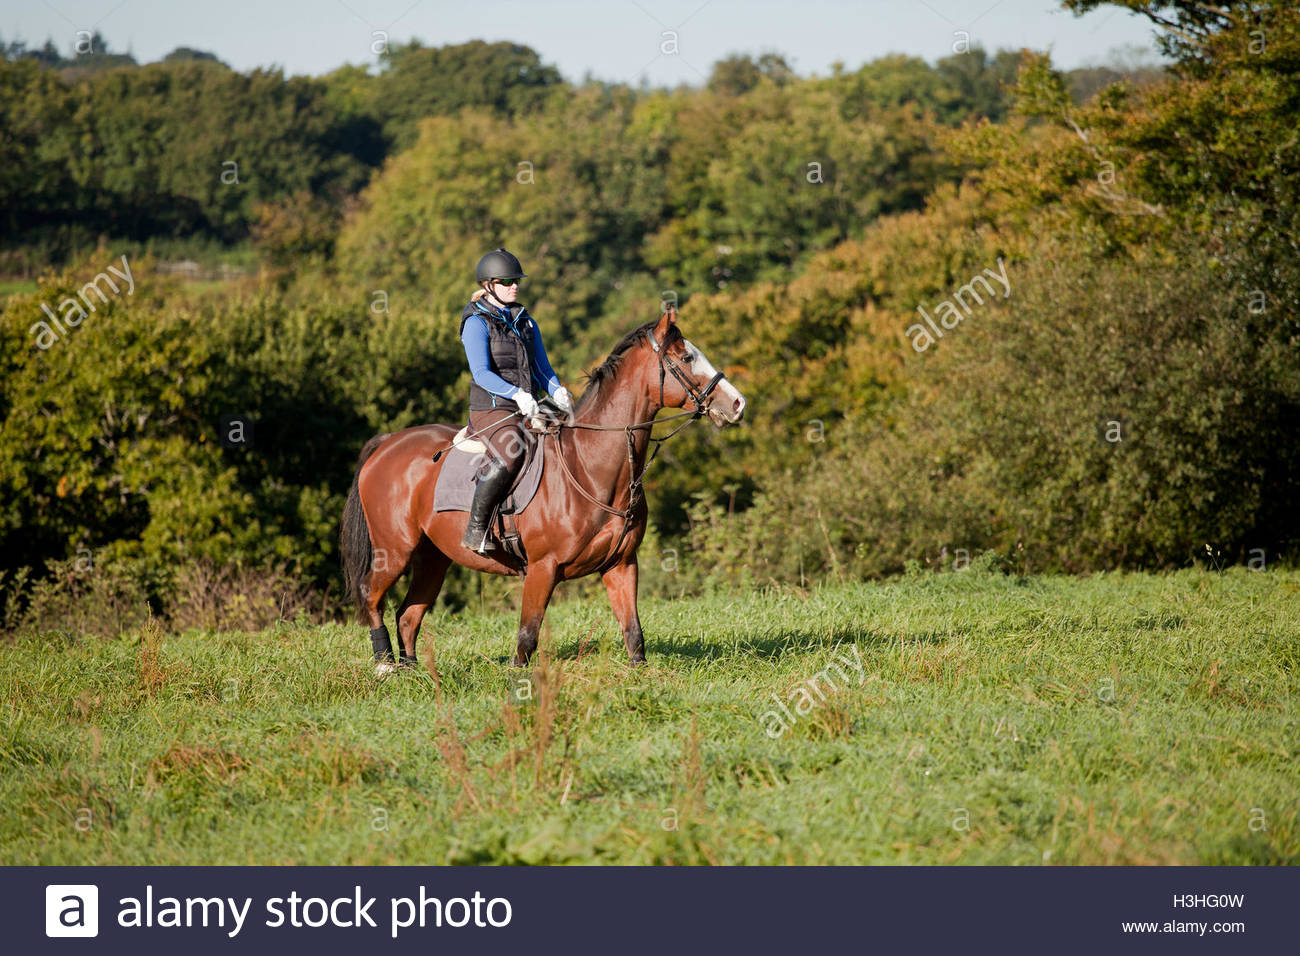 Young woman riding in open field UK - Stock Image